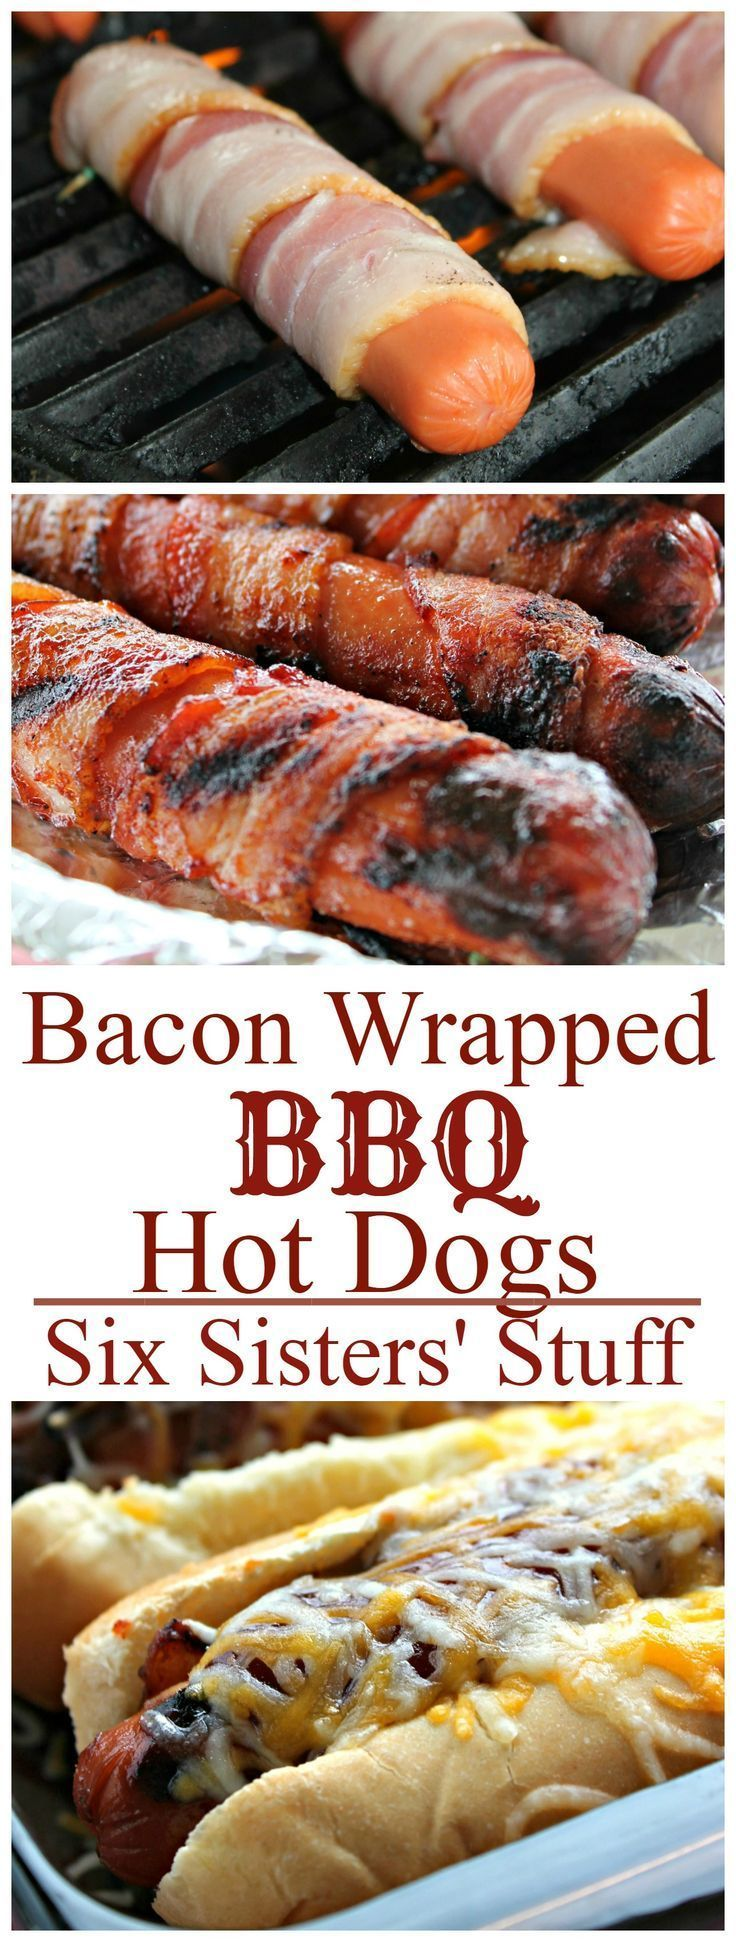 Hot Dogs just got a whole lot better with these BBQ Bacon Wrapped Hot Dogs from http://Sixsistersstuff.com